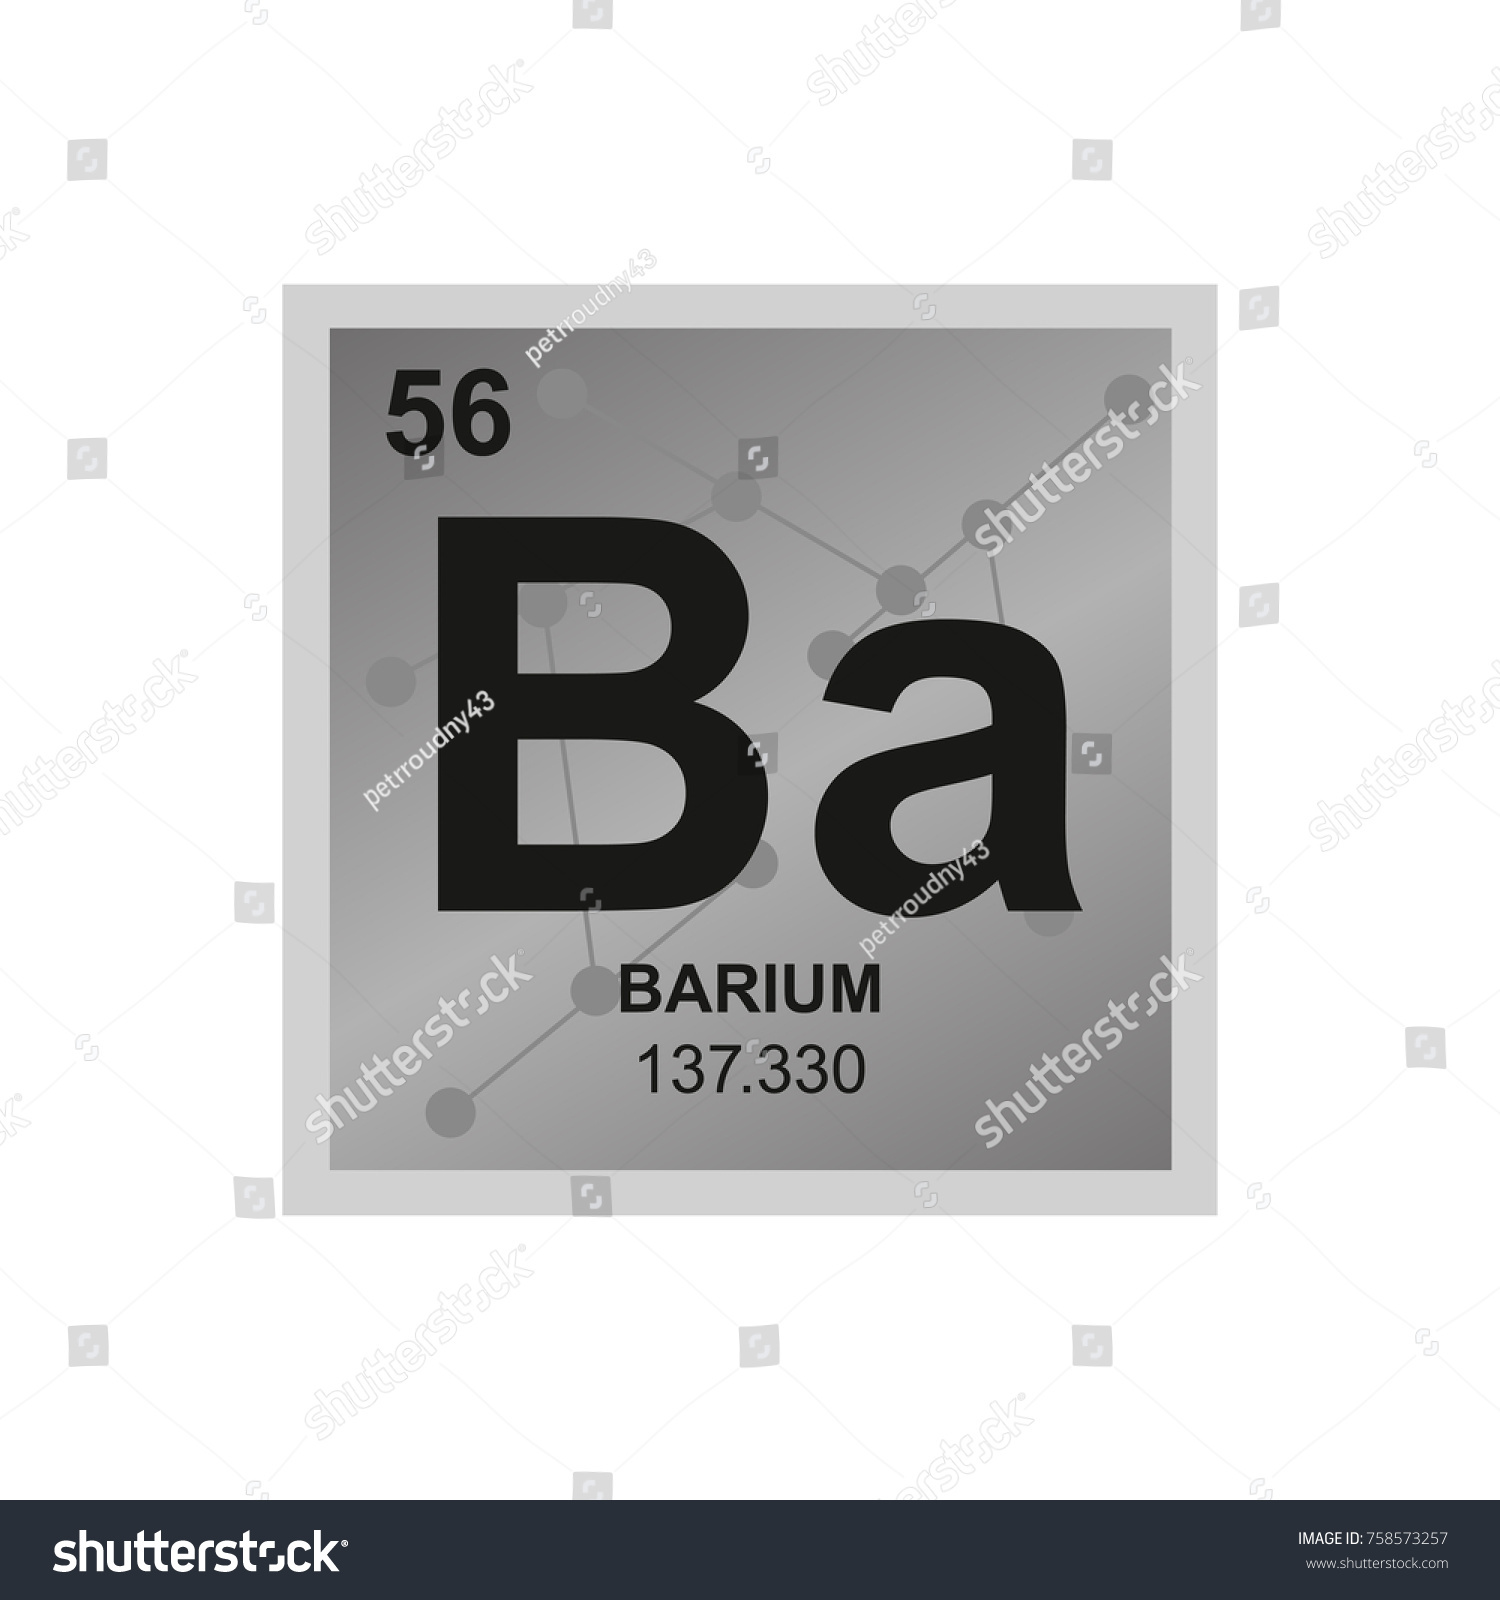 What is the symbol for barium on the periodic table images element 59 on the periodic table images periodic table images periodic table element ba image collections gamestrikefo Image collections